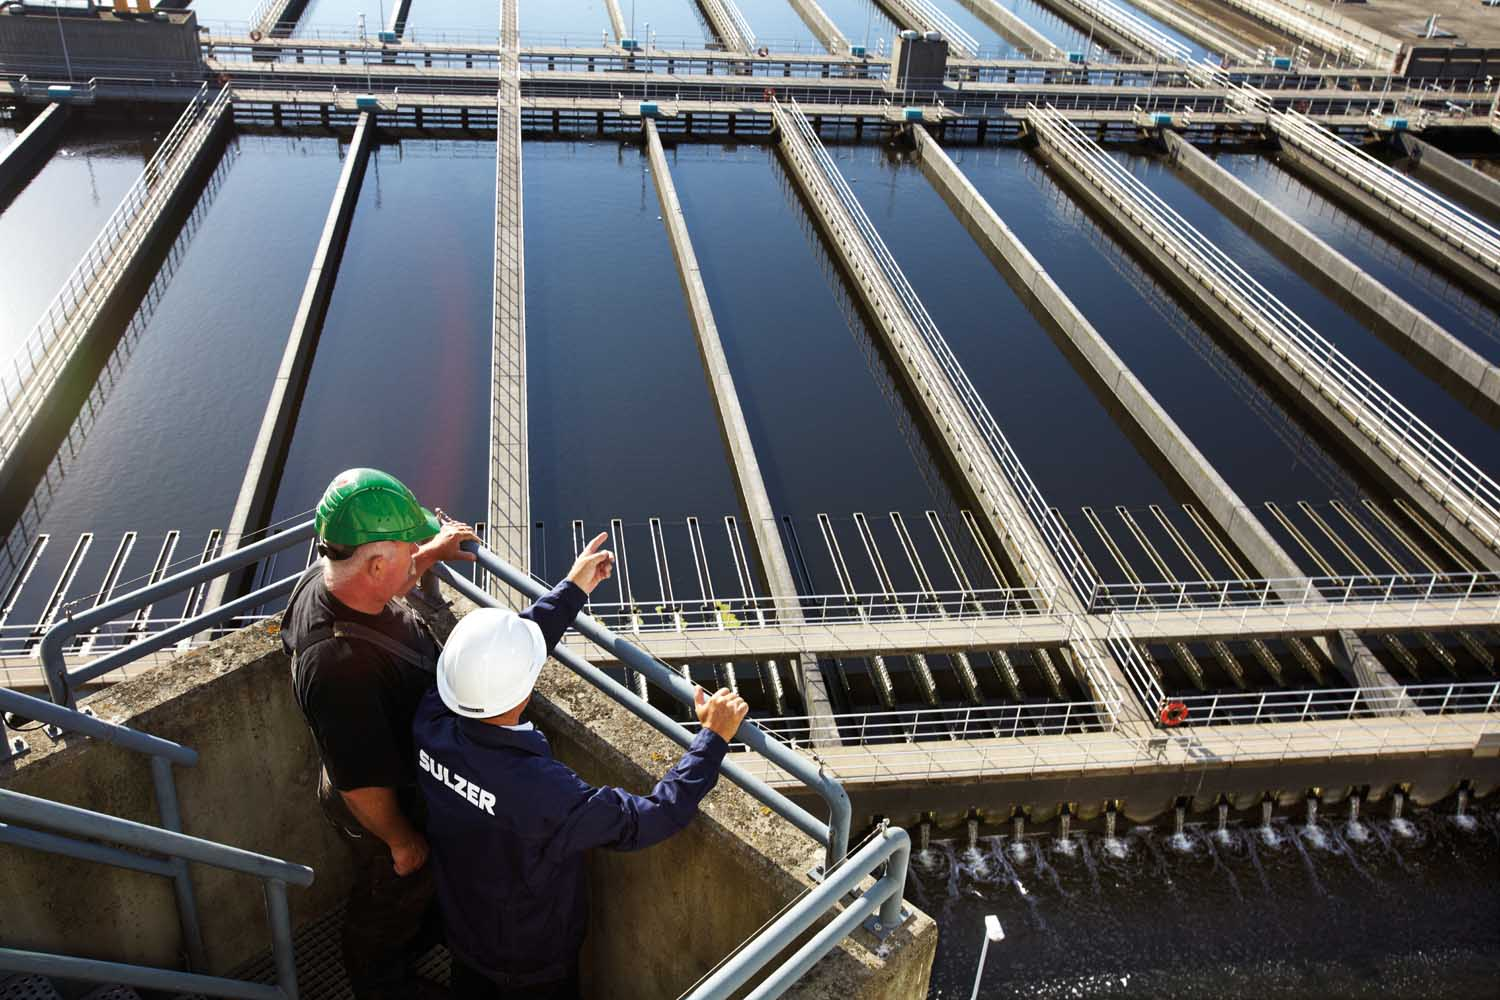 Sulzer employee and customer look out over wastewater treatment plant in Denmark